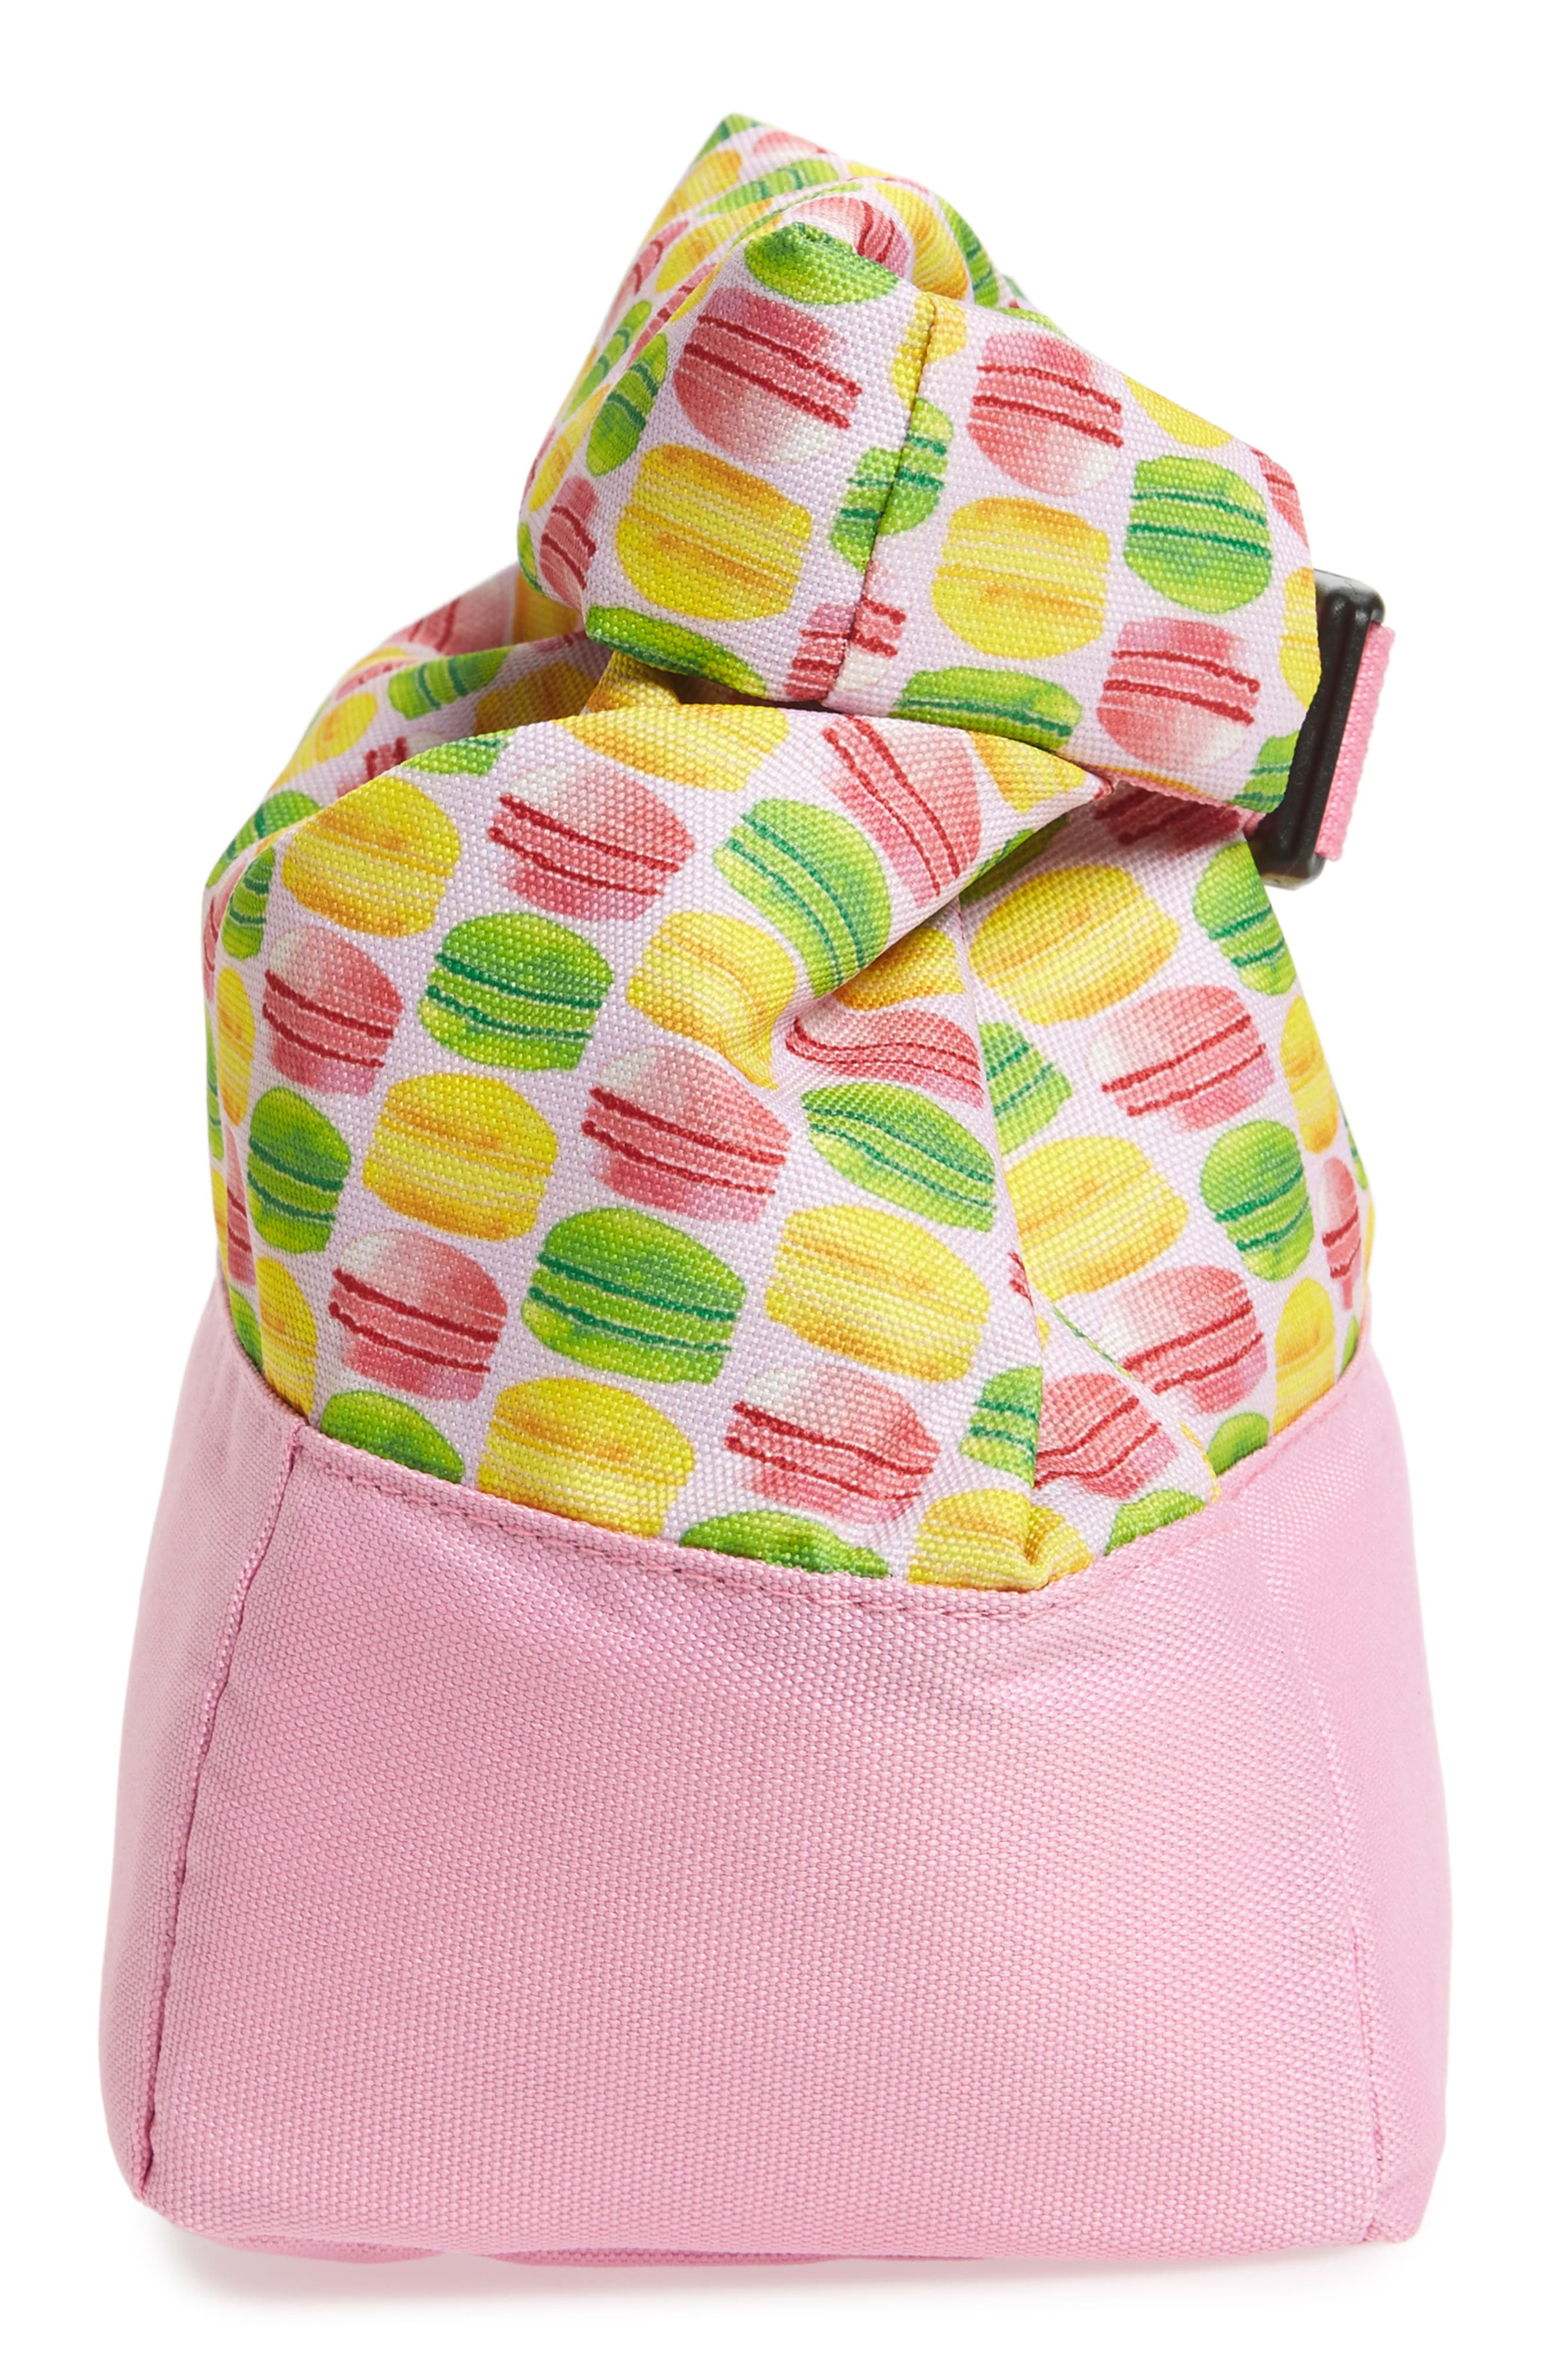 Macaron Print Roll Top Lunch Bag,                             Alternate thumbnail 4, color,                             680